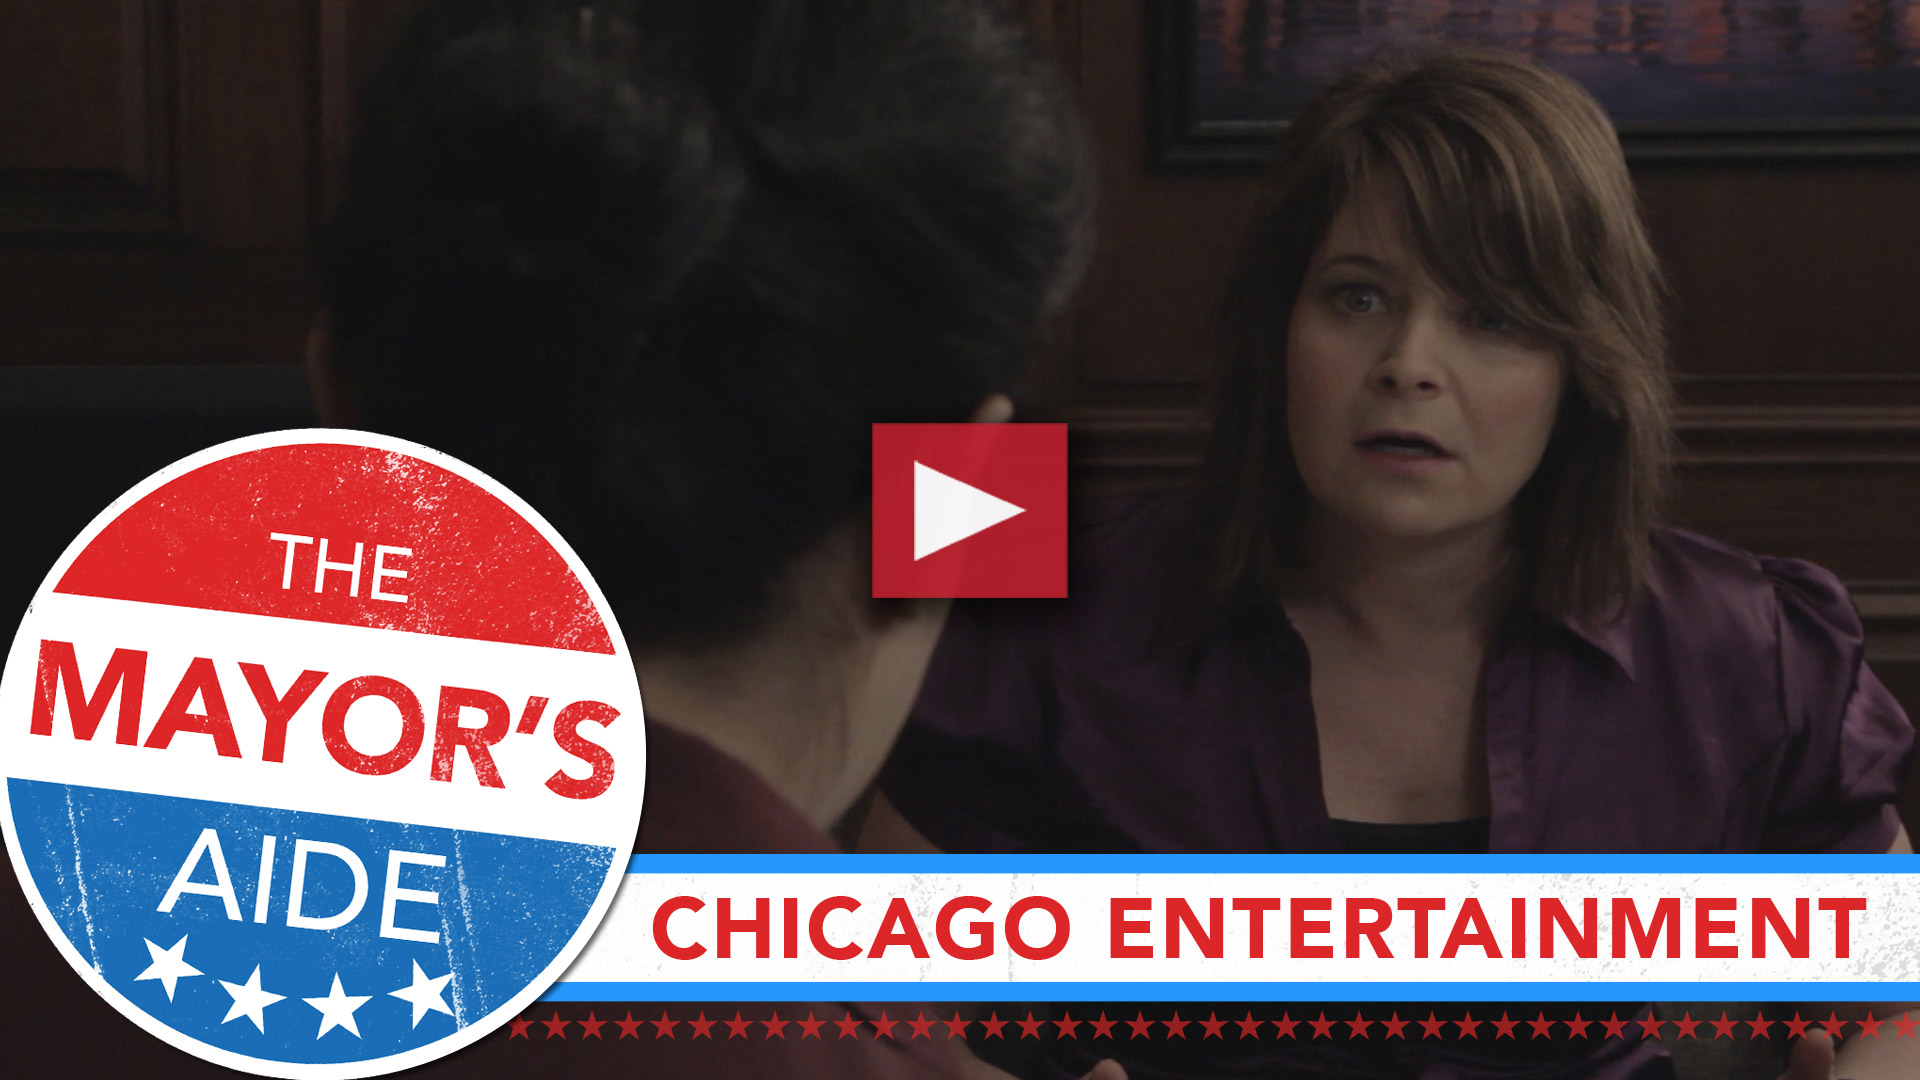 The Mayor's Aide: Chicago Entertainment